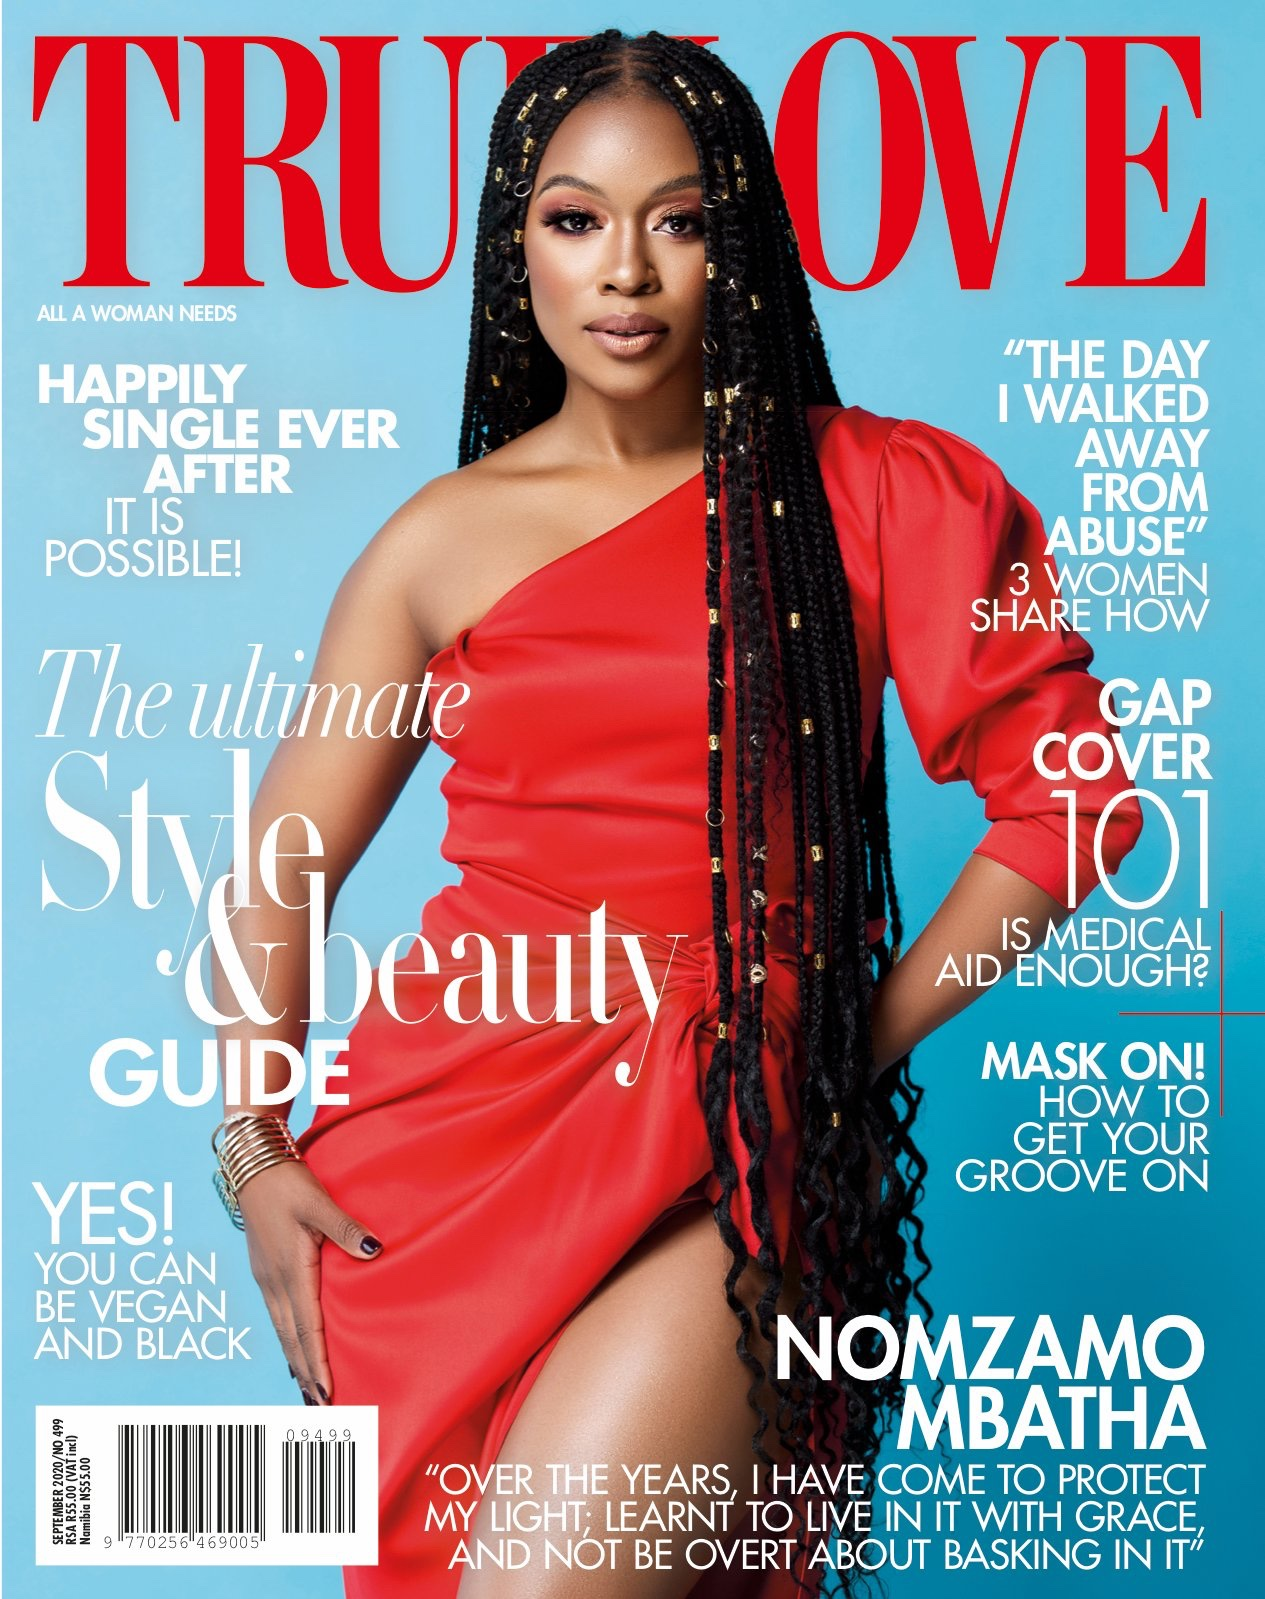 Nomzamo Mbatha shines on True Love Magazine's September 2020 Cover